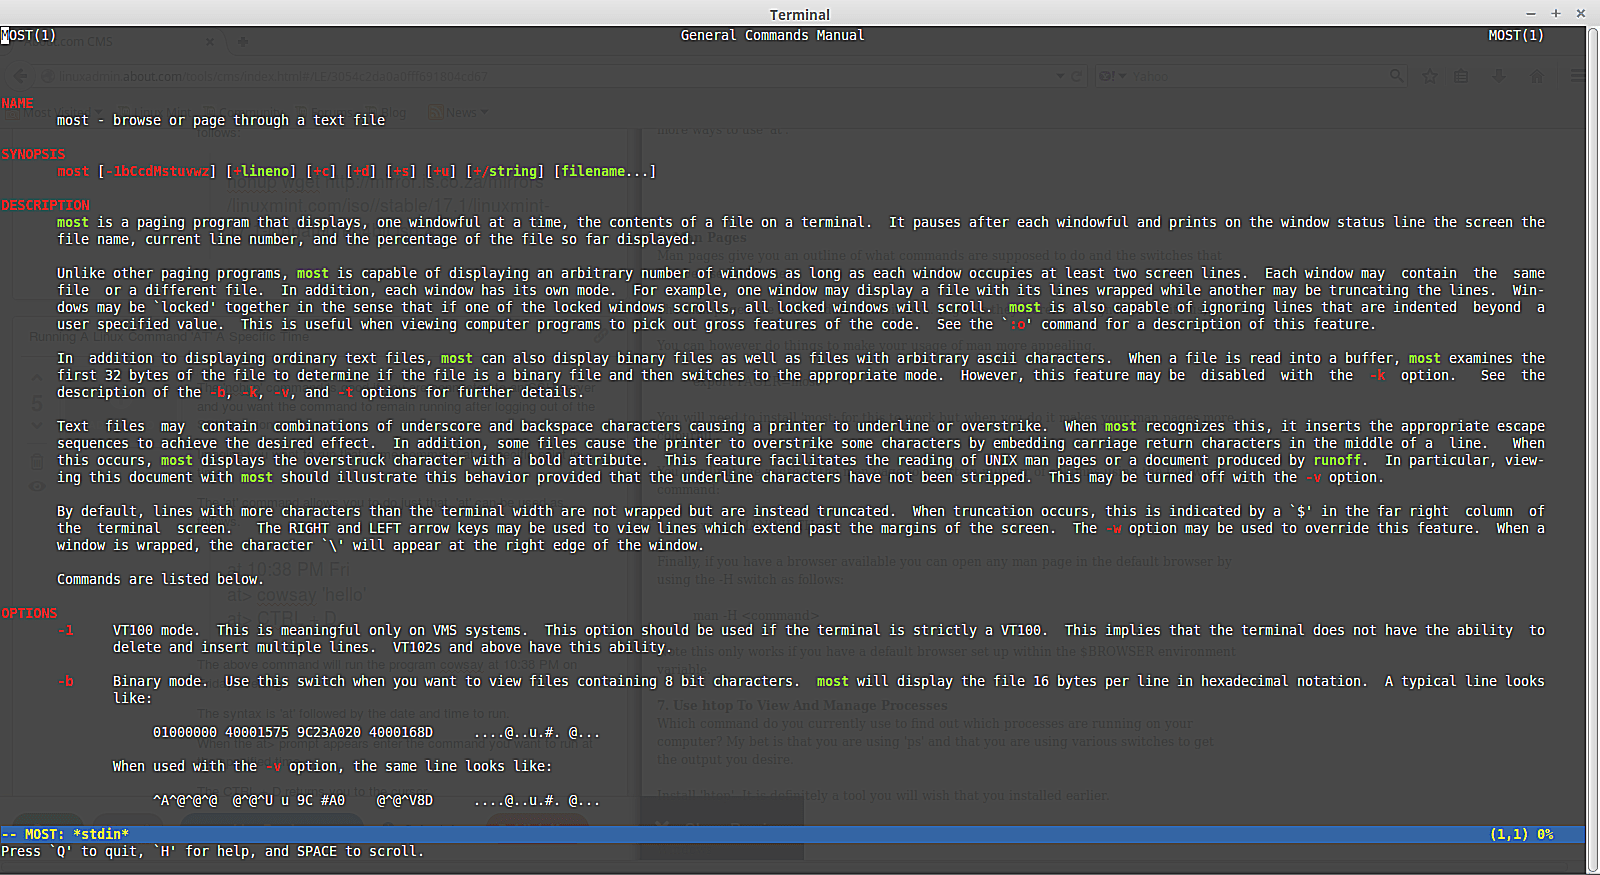 Colorful man pages in the Linux terminal